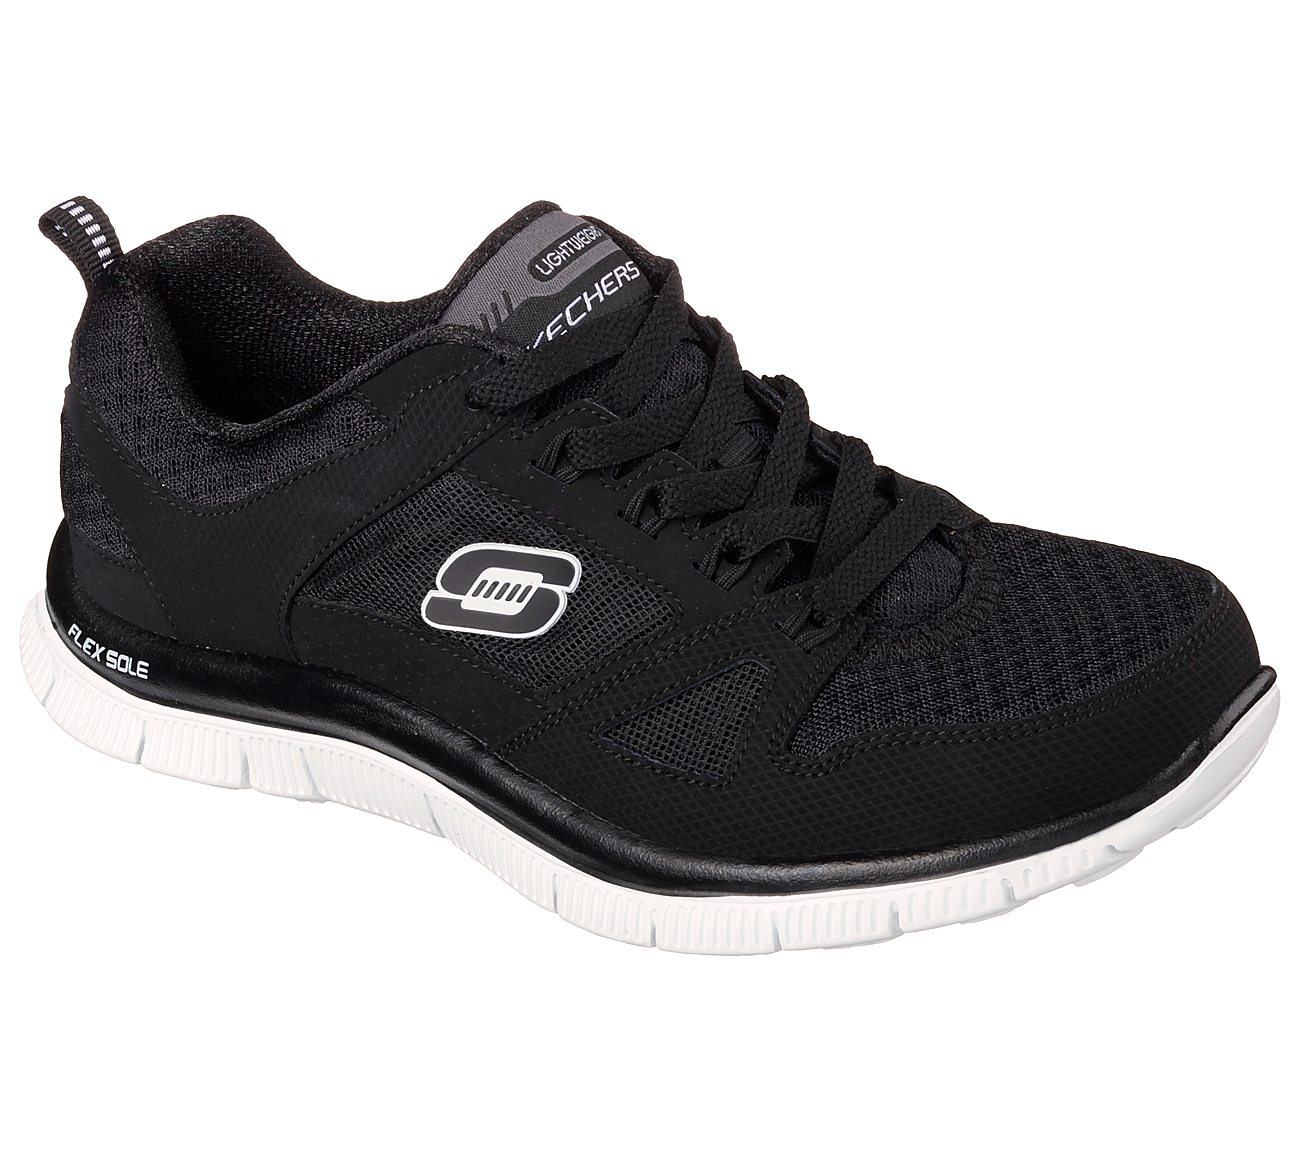 Buy SKECHERS Flex Appeal - Adaptable